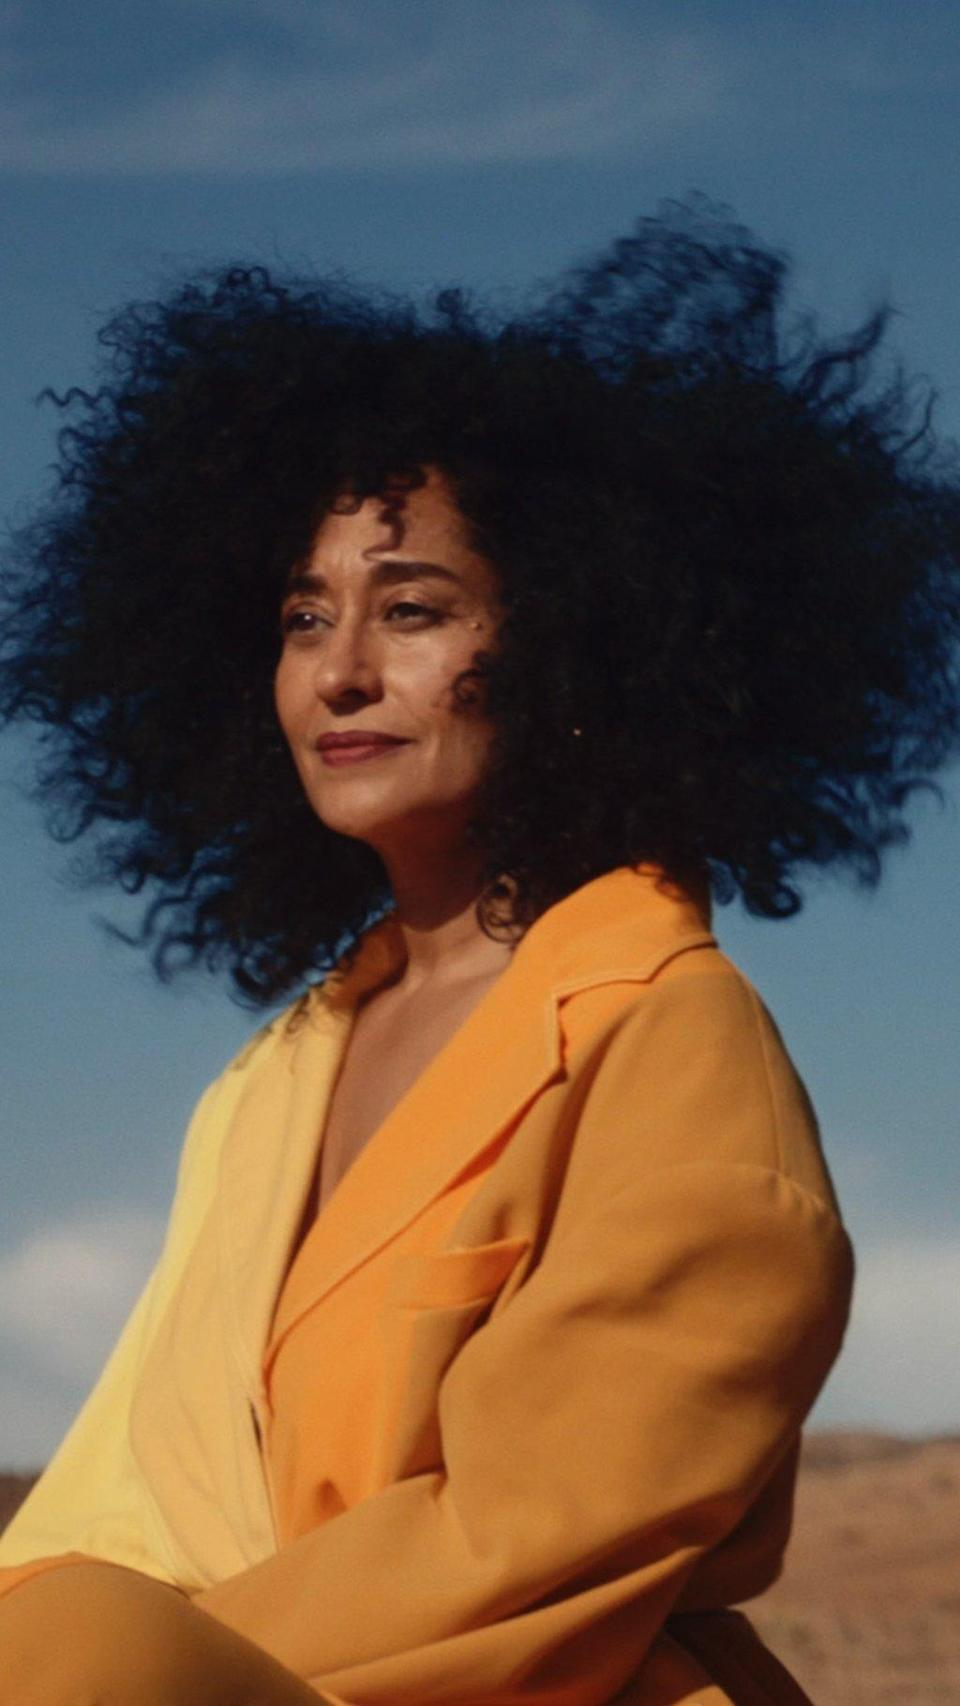 """<p>Tracee Ellis Ross is, more or less, the human equivalent of a perfect 70-degree day, and we honestly wish we could bottle up her essence and just bask in it whenever we're feeling down. Science has yet to make that possible, unfortunately; the fact that she's bottled up some amazing hair-care formulas, though, is pretty much the next best thing. The actor's Pattern Beauty is just as much about her own individuality as that of each person who uses the products. """"Pattern is an extension of a story that I've always told through all the characters that I've played,"""" <a href=""""https://www.allure.com/story/tracee-ellis-ross-digital-cover-interview-2019?mbid=synd_yahoo_rss"""" rel=""""nofollow noopener"""" target=""""_blank"""" data-ylk=""""slk:she told Allure"""" class=""""link rapid-noclick-resp"""">she told <em>Allure</em></a>. """"It's about taking up space. It's about being who you are and being supported in that and being loved for that. For that exact thing that is who you are.""""</p> <p><strong>Star product:</strong> Forbes says Pattern's <a href=""""https://shop-links.co/1747587661269362104"""" rel=""""nofollow noopener"""" target=""""_blank"""" data-ylk=""""slk:Leave-In Conditioner"""" class=""""link rapid-noclick-resp"""">Leave-In Conditioner</a> ($25) is wonderful. """"It feels light, but not so light that your hair dries up at the end of the day,"""" she says. """"Plus, it melted away any tangles I had with the quickness, creating the perfect base for me to style my hair.""""</p>"""